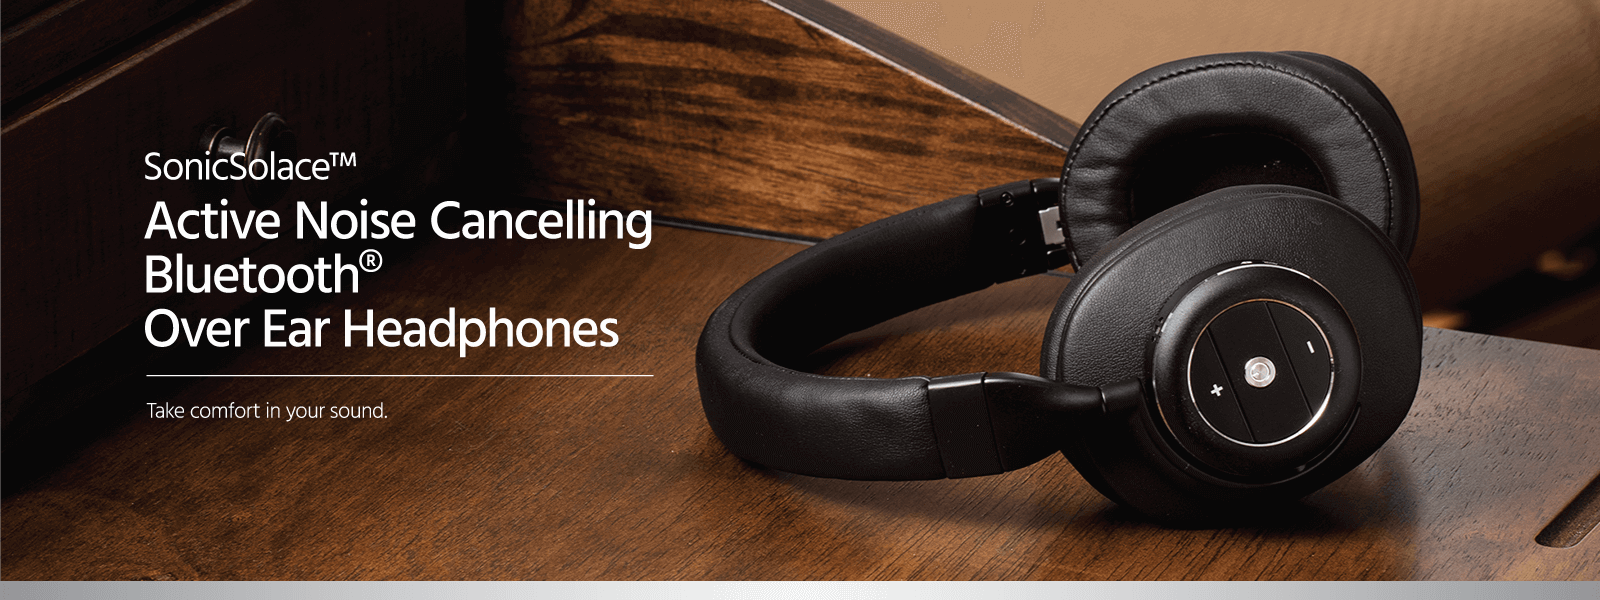 Monoprice SonicSolace Active Noise Cancelling Bluetooth w/aptX Wireless Over the Ear Headphones, Black (New in Bulk Packaging/No Retail Box)